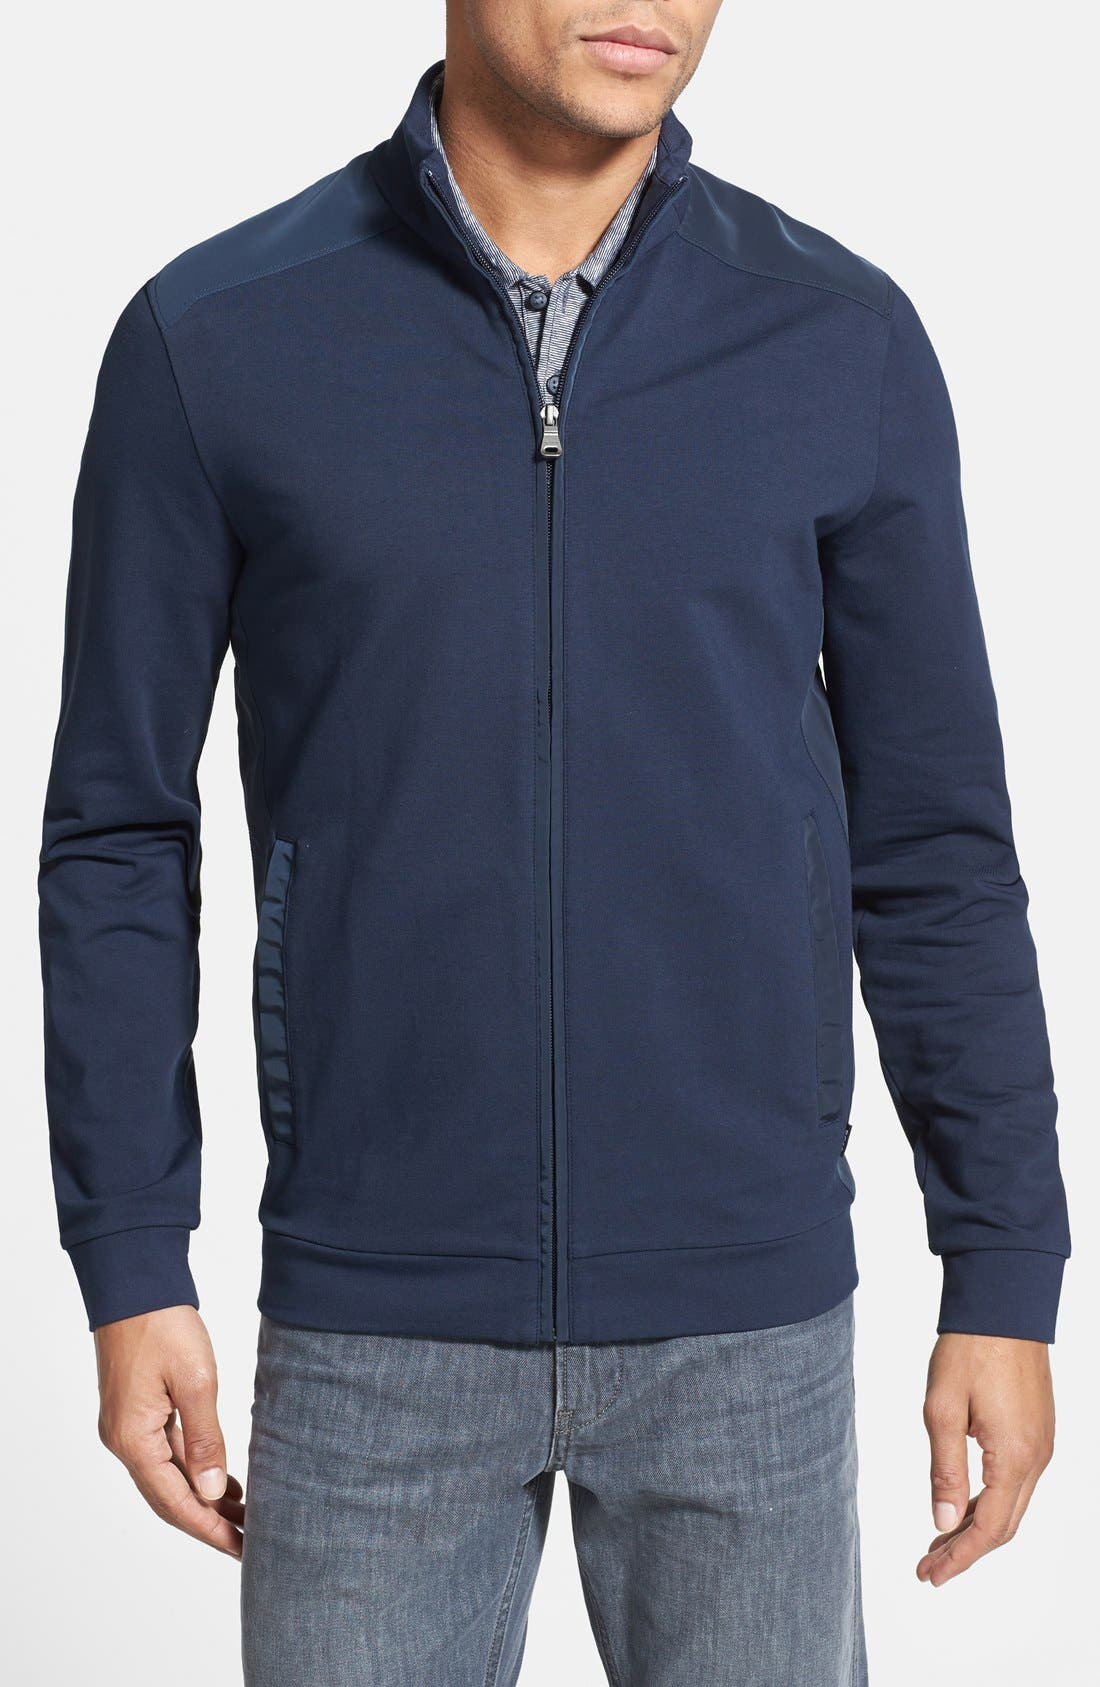 Alternate Image 1 Selected - BOSS HUGO BOSS 'Cannobio 63' Front Zip Sweater